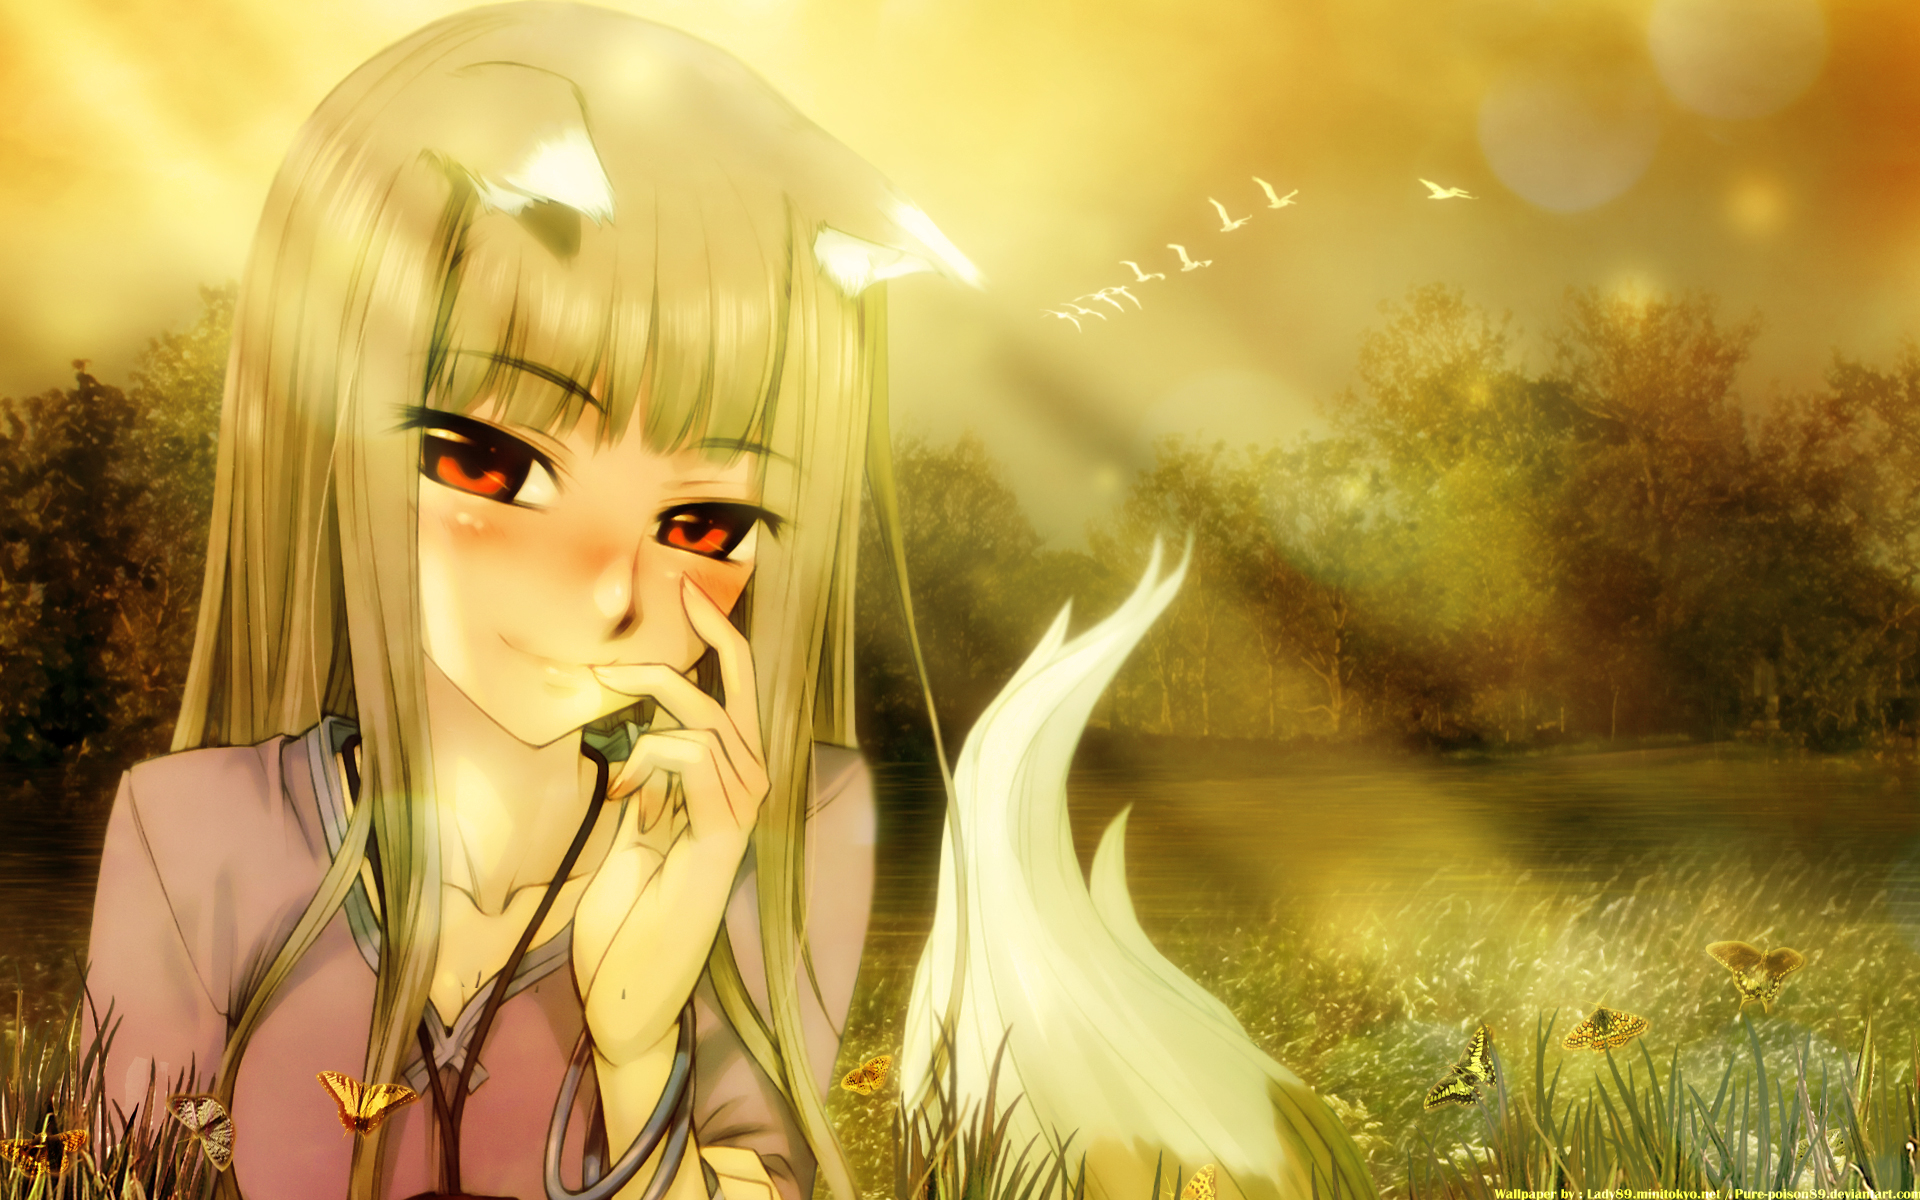 Wallpaper Anime Horo Spice and wolf Spice and Wolf Horo White